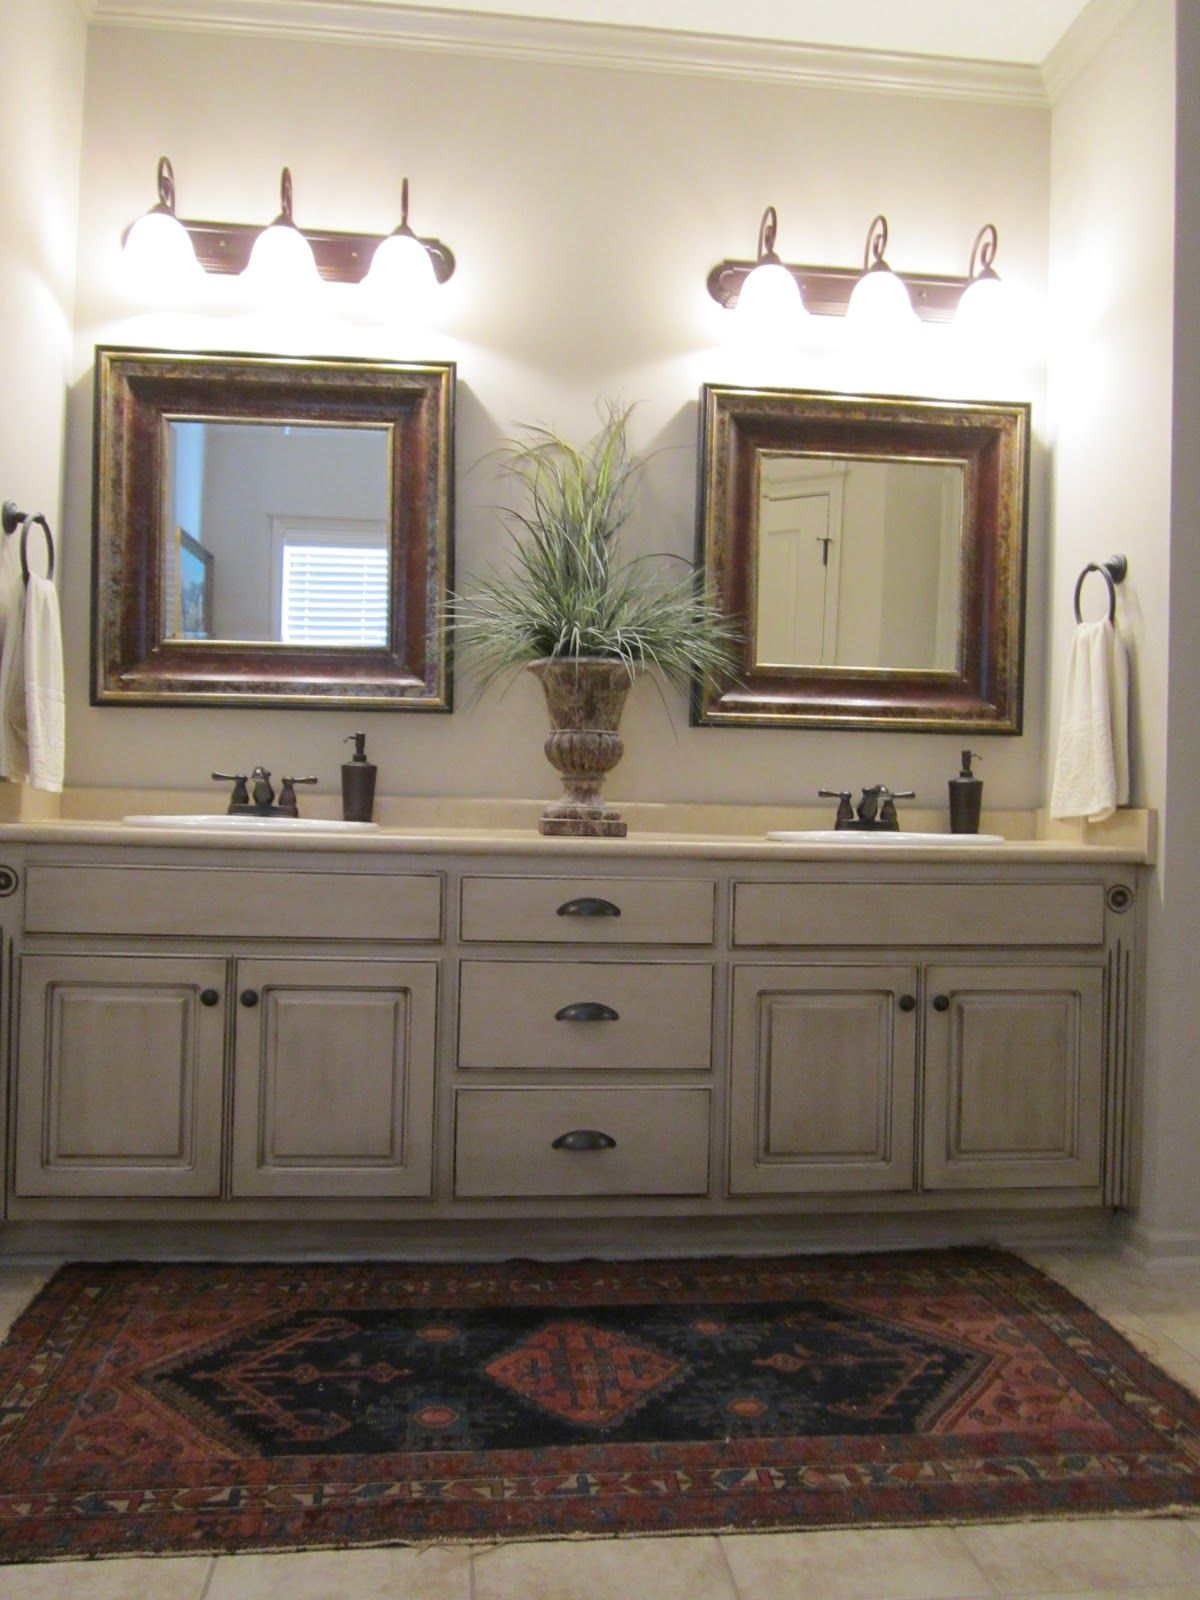 Painted Bathroom Cabinets Love These Painted Bathroom Cabinets And The Lights What I Would